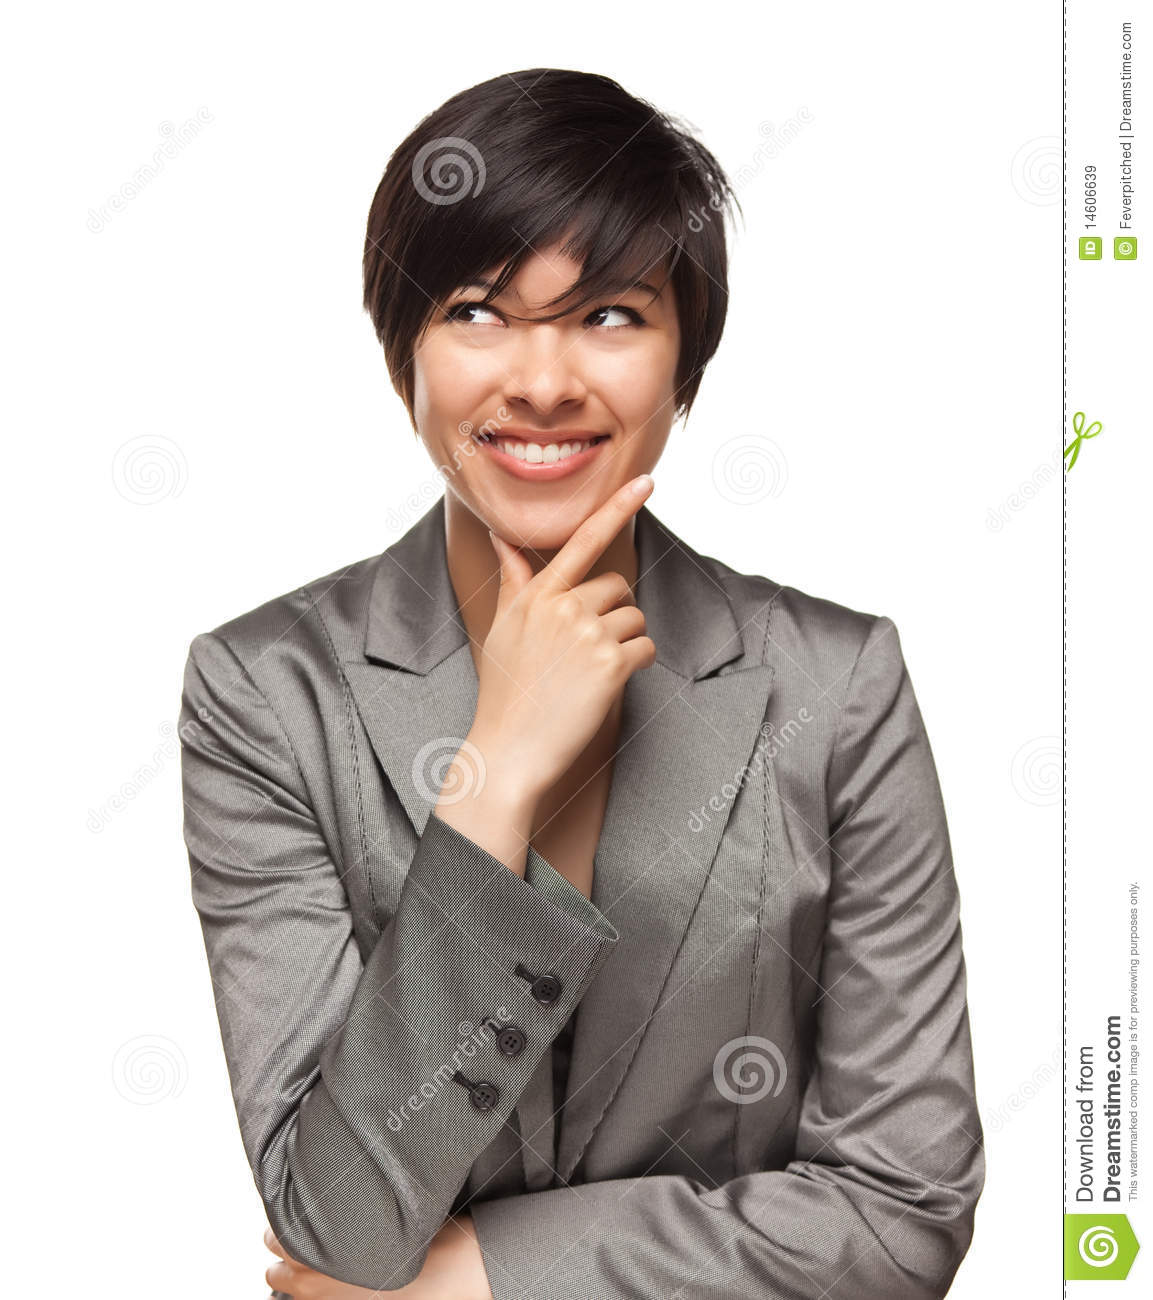 Smiling Multiethnic Young Adult Woman on White